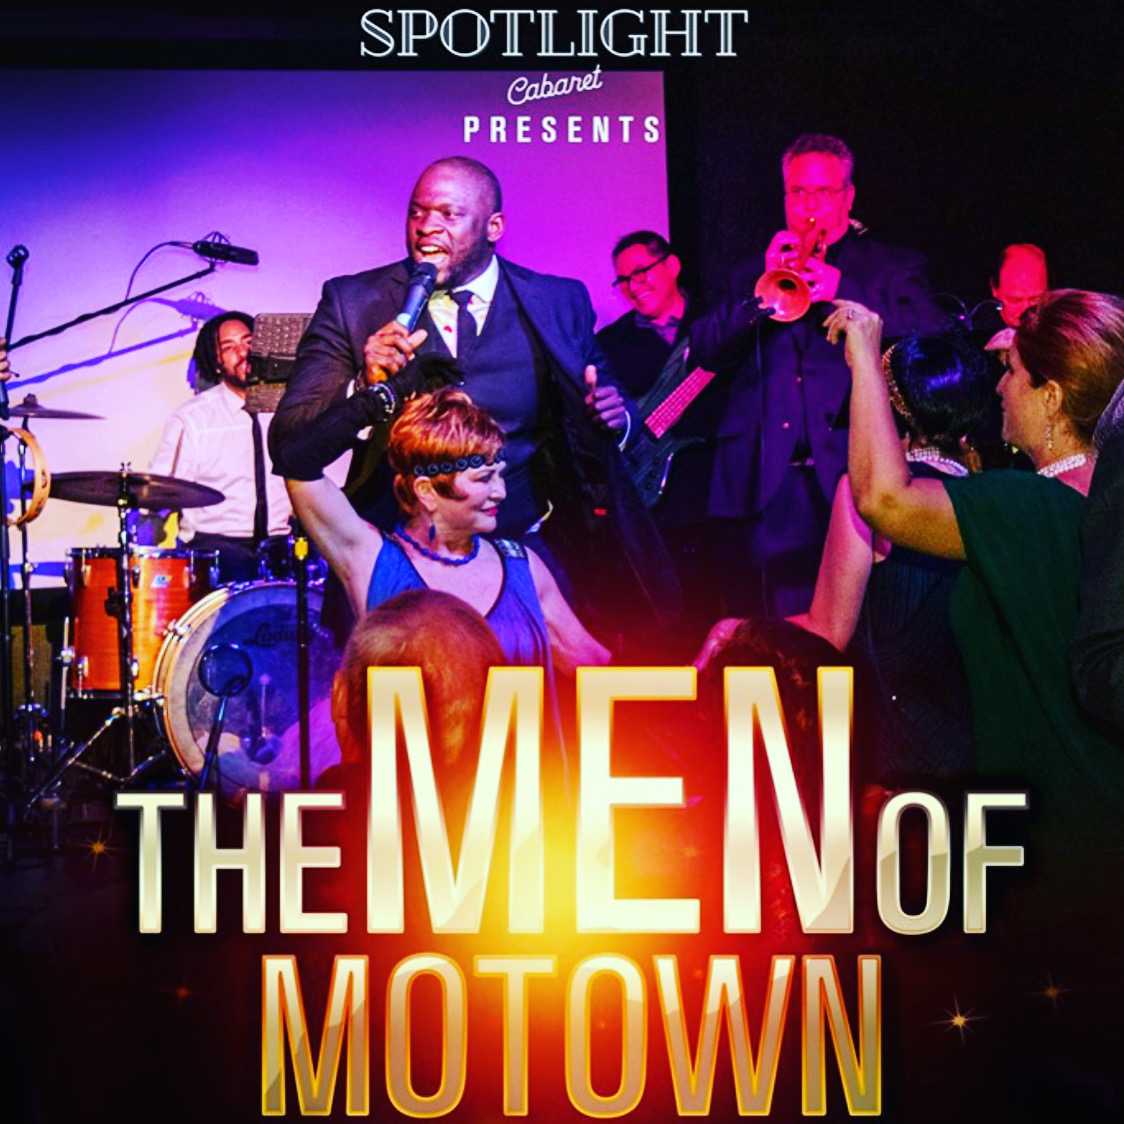 SOLD OUT - The Men of Motown Prime Rib Dinner & Show